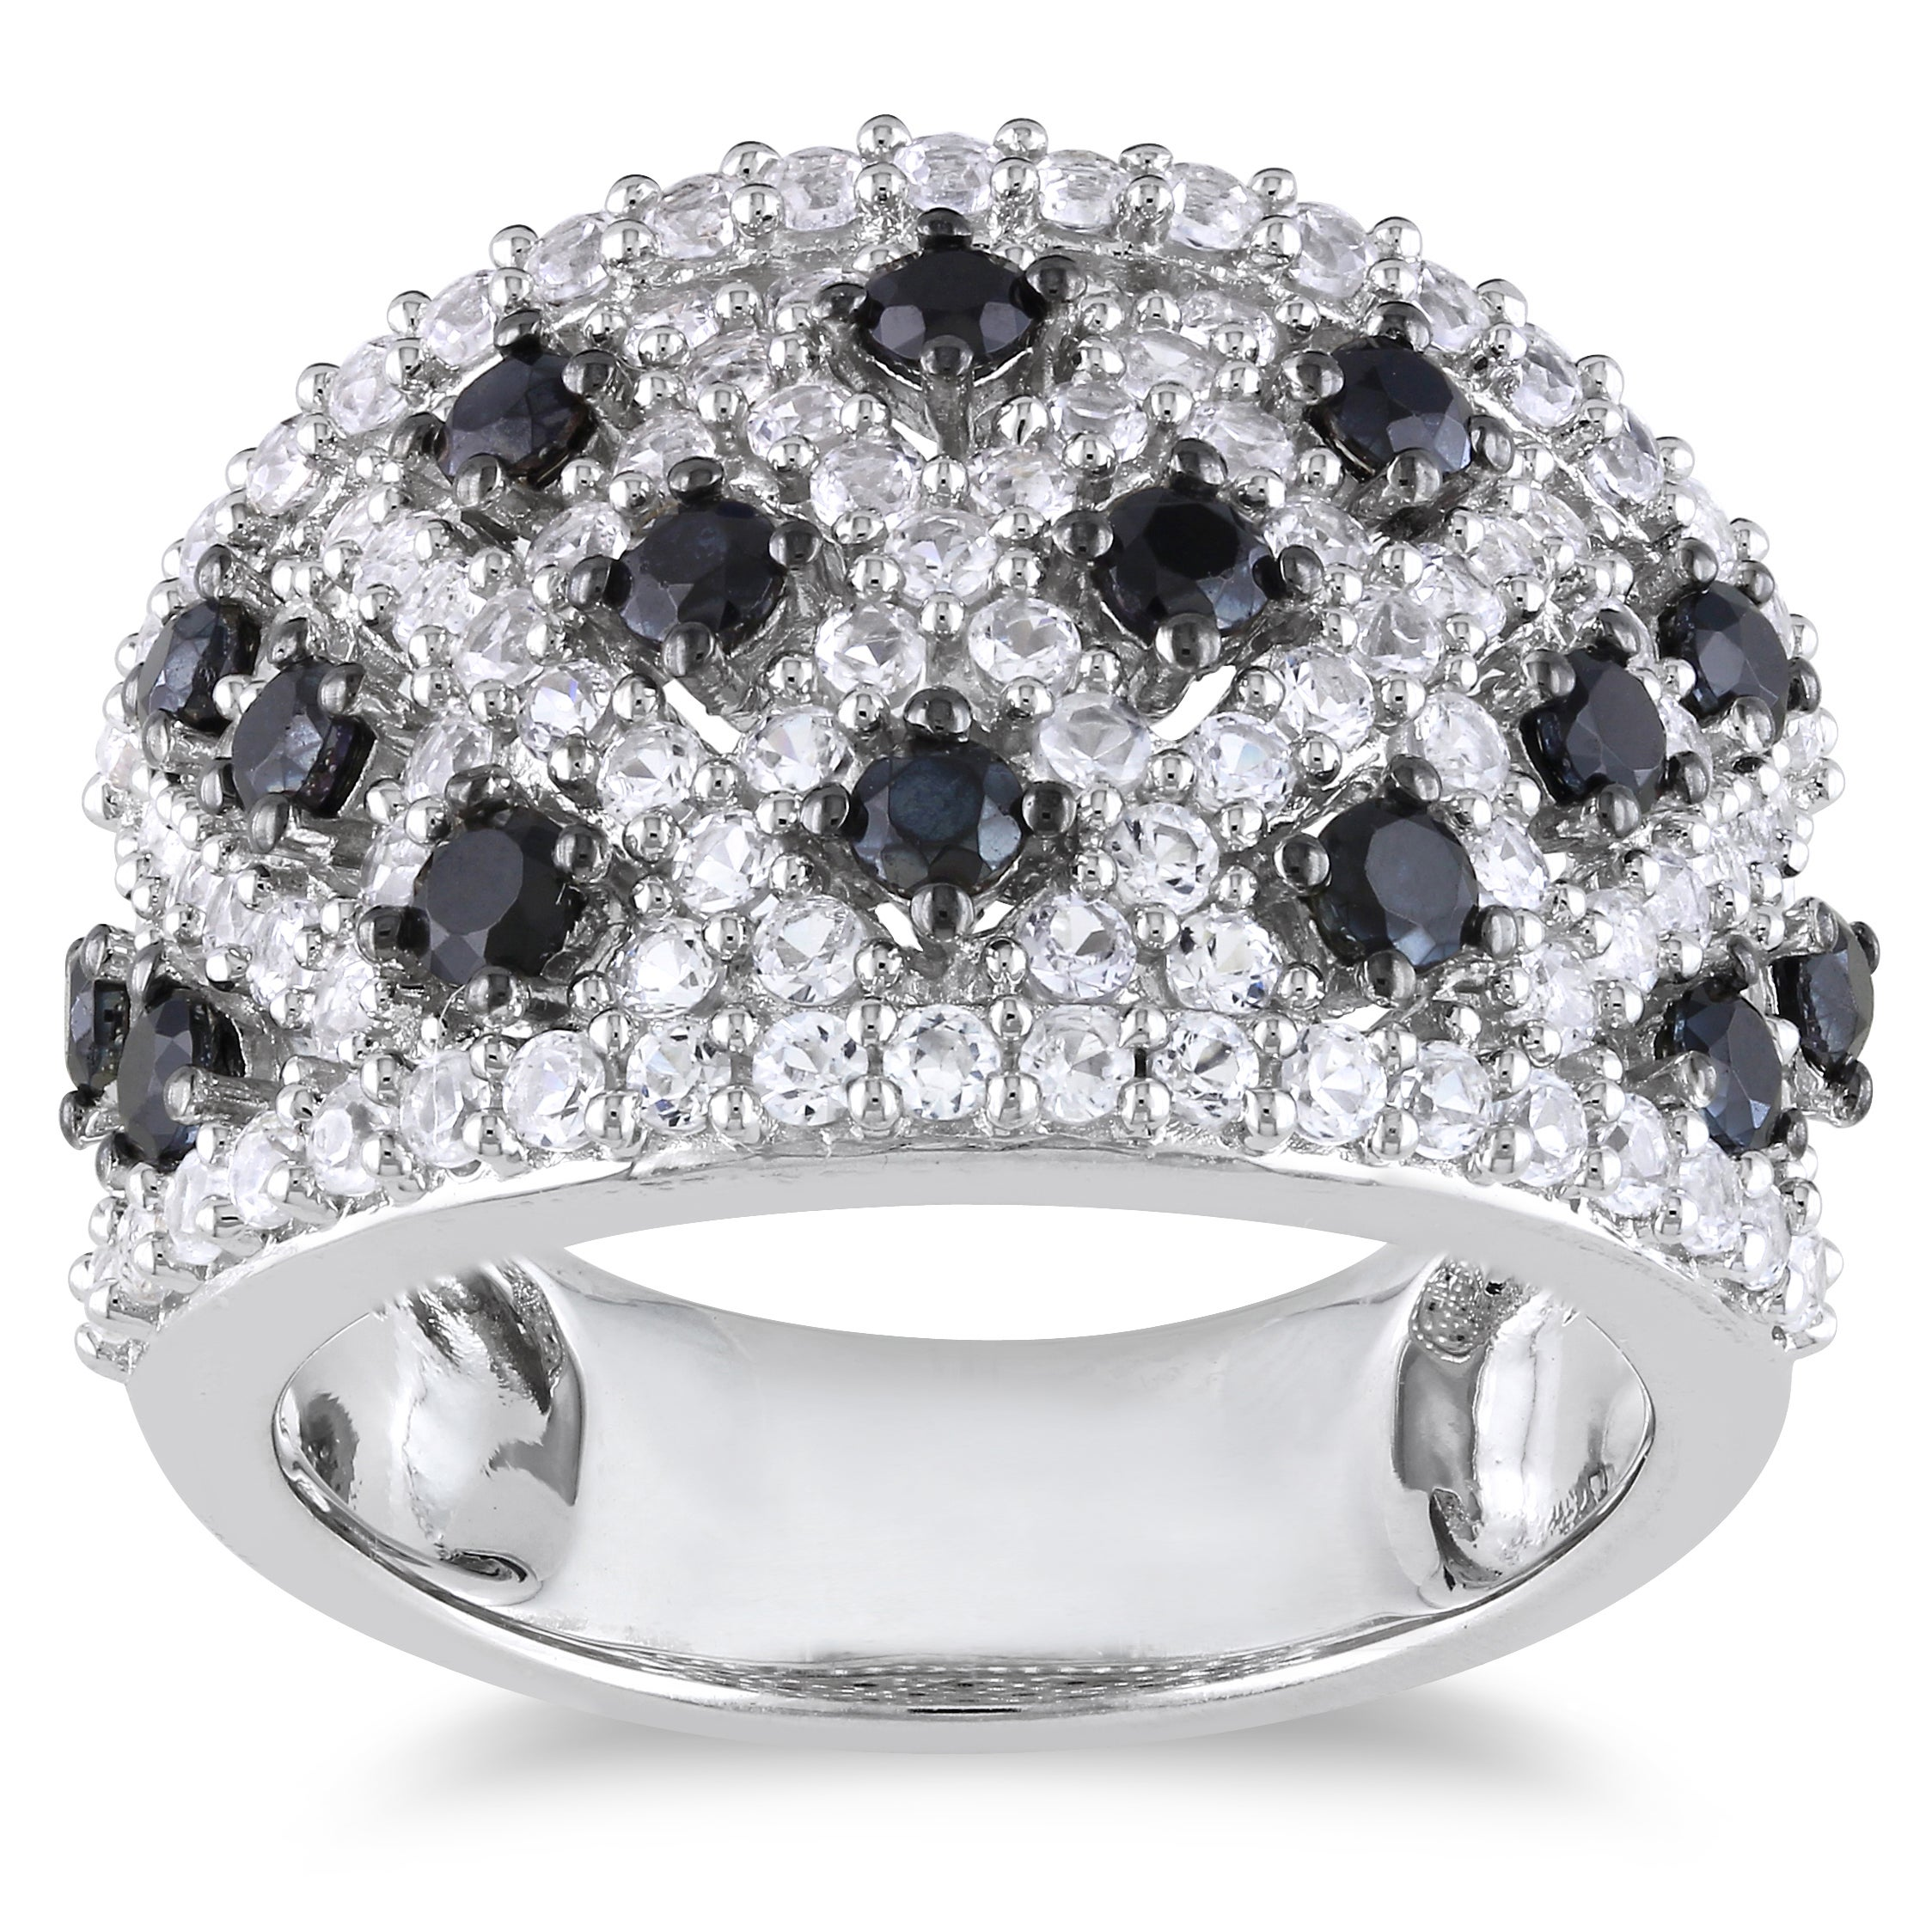 Miadora Sterling Silver Black Spinel and White Sapphire Ring - Thumbnail 0